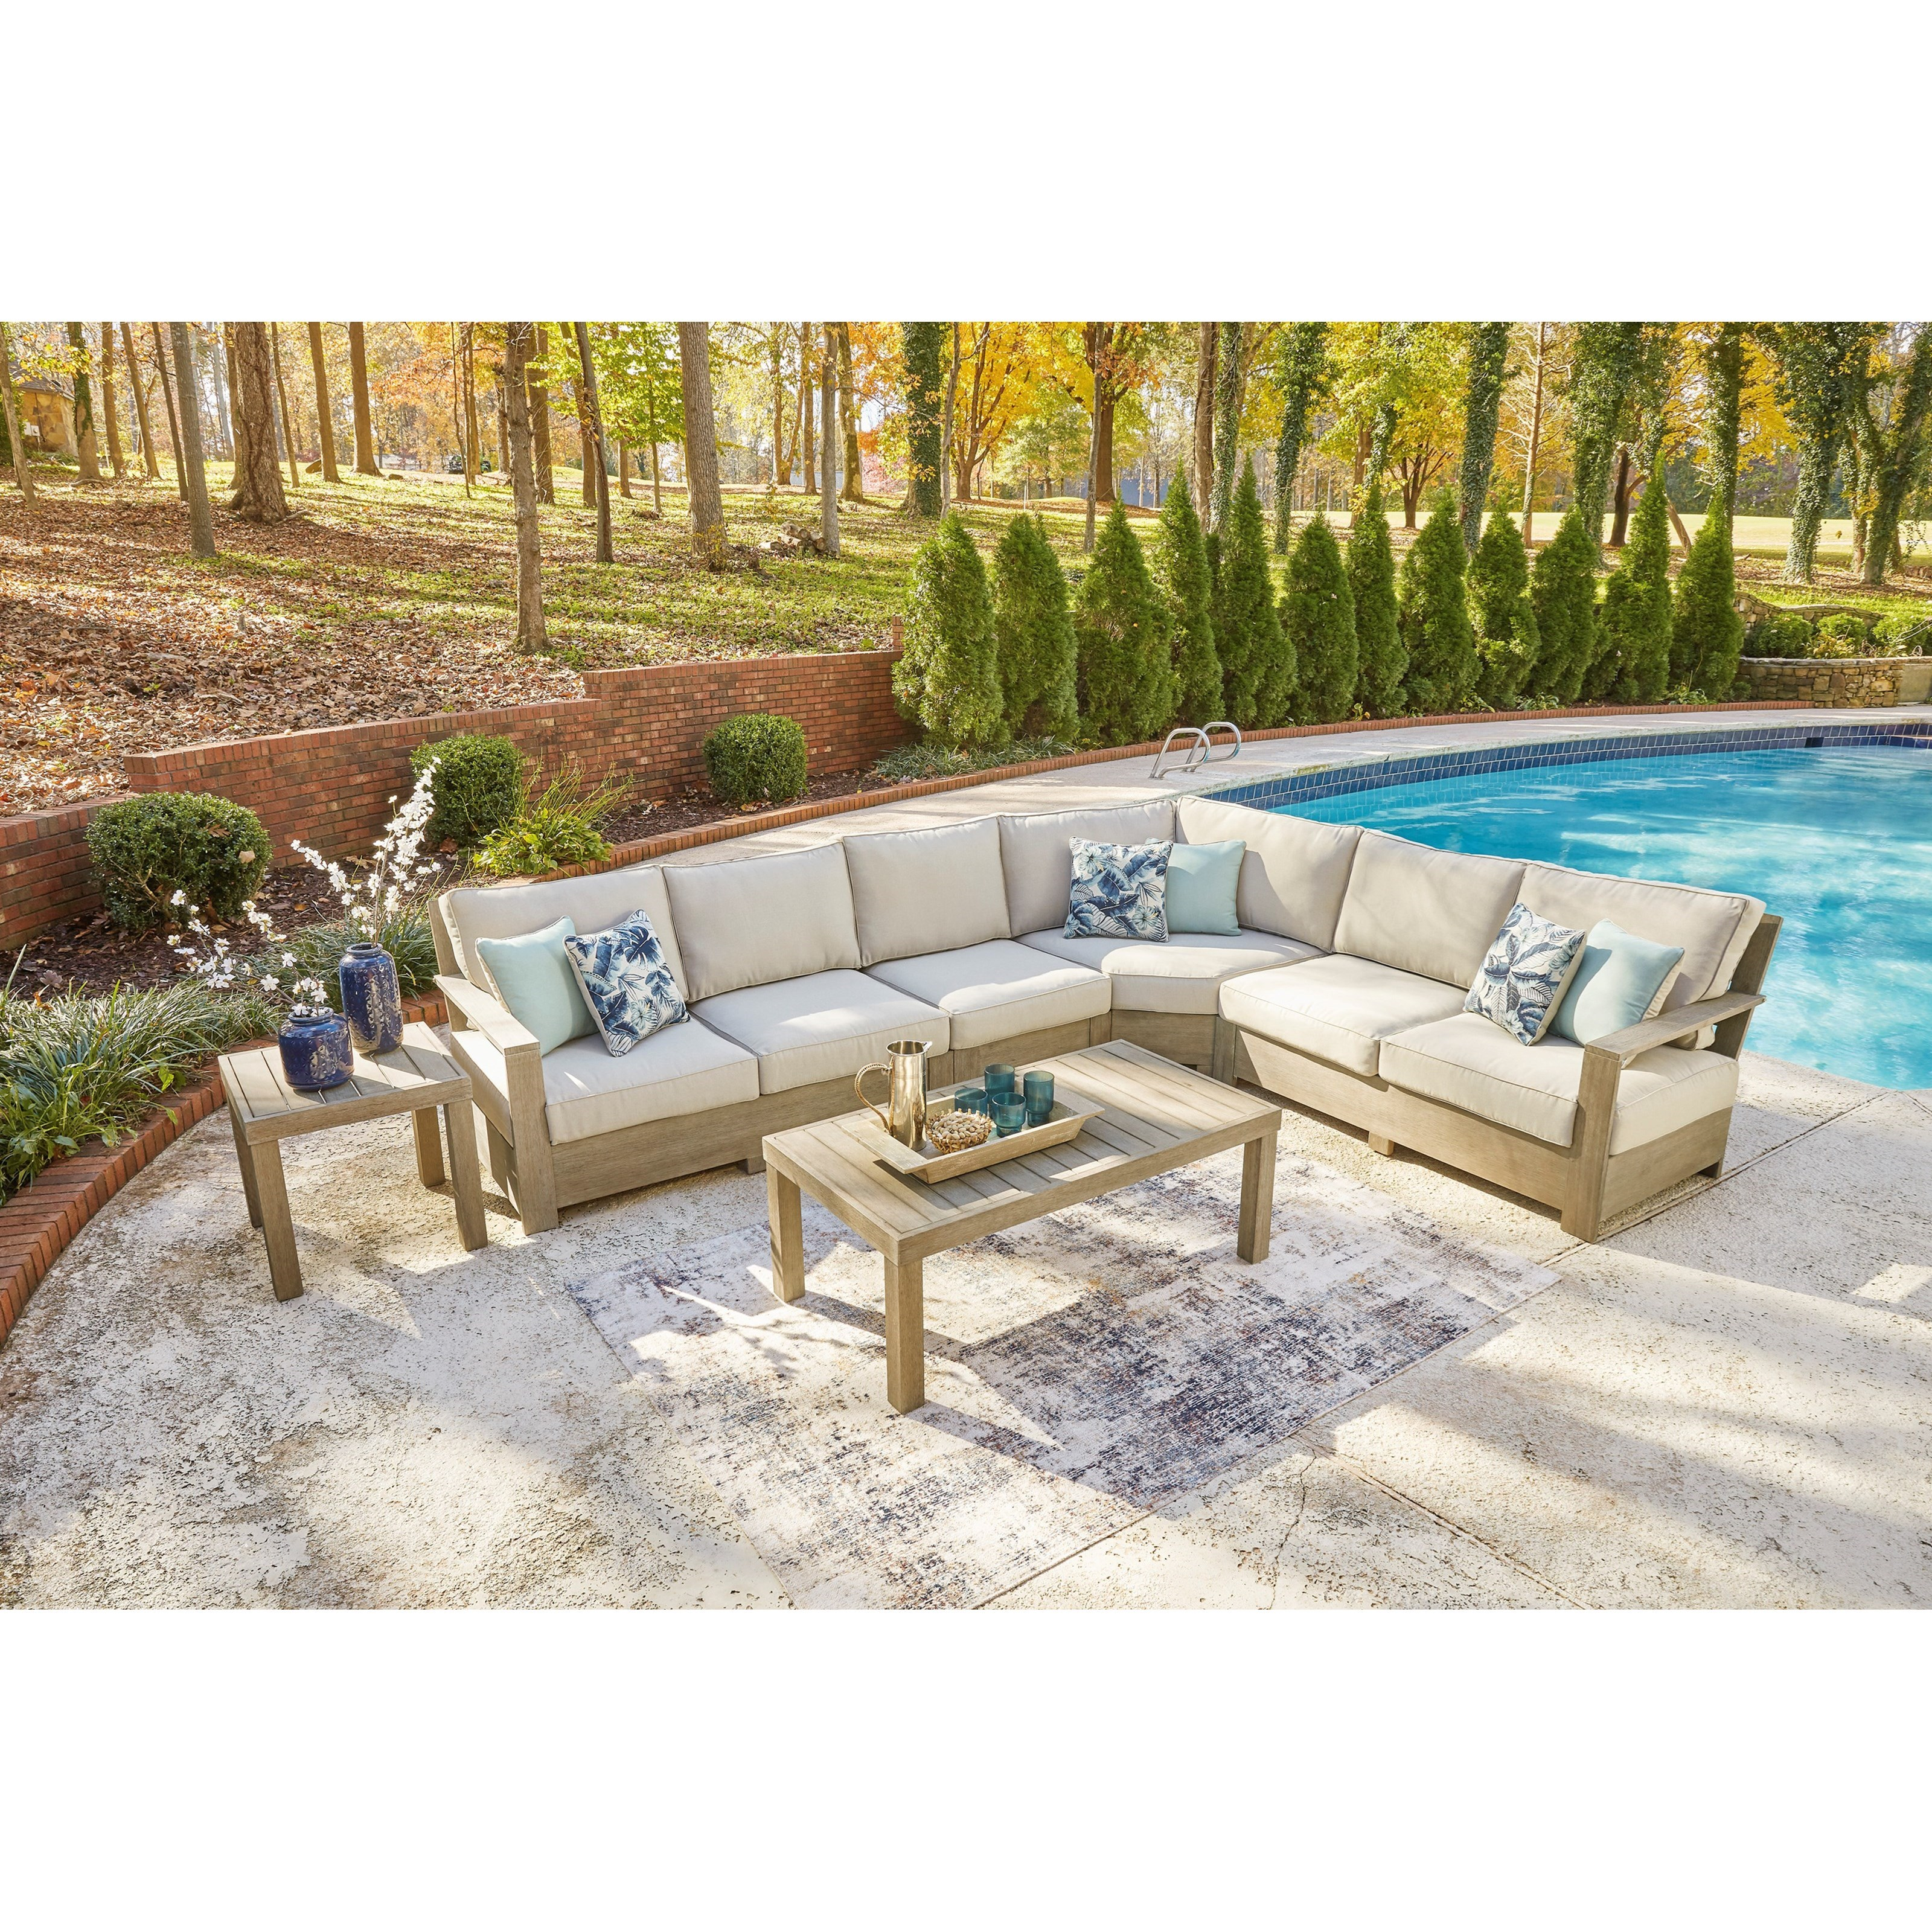 Silo Point Outdoor Sectional Set with Tables by Ashley (Signature Design) at Johnny Janosik